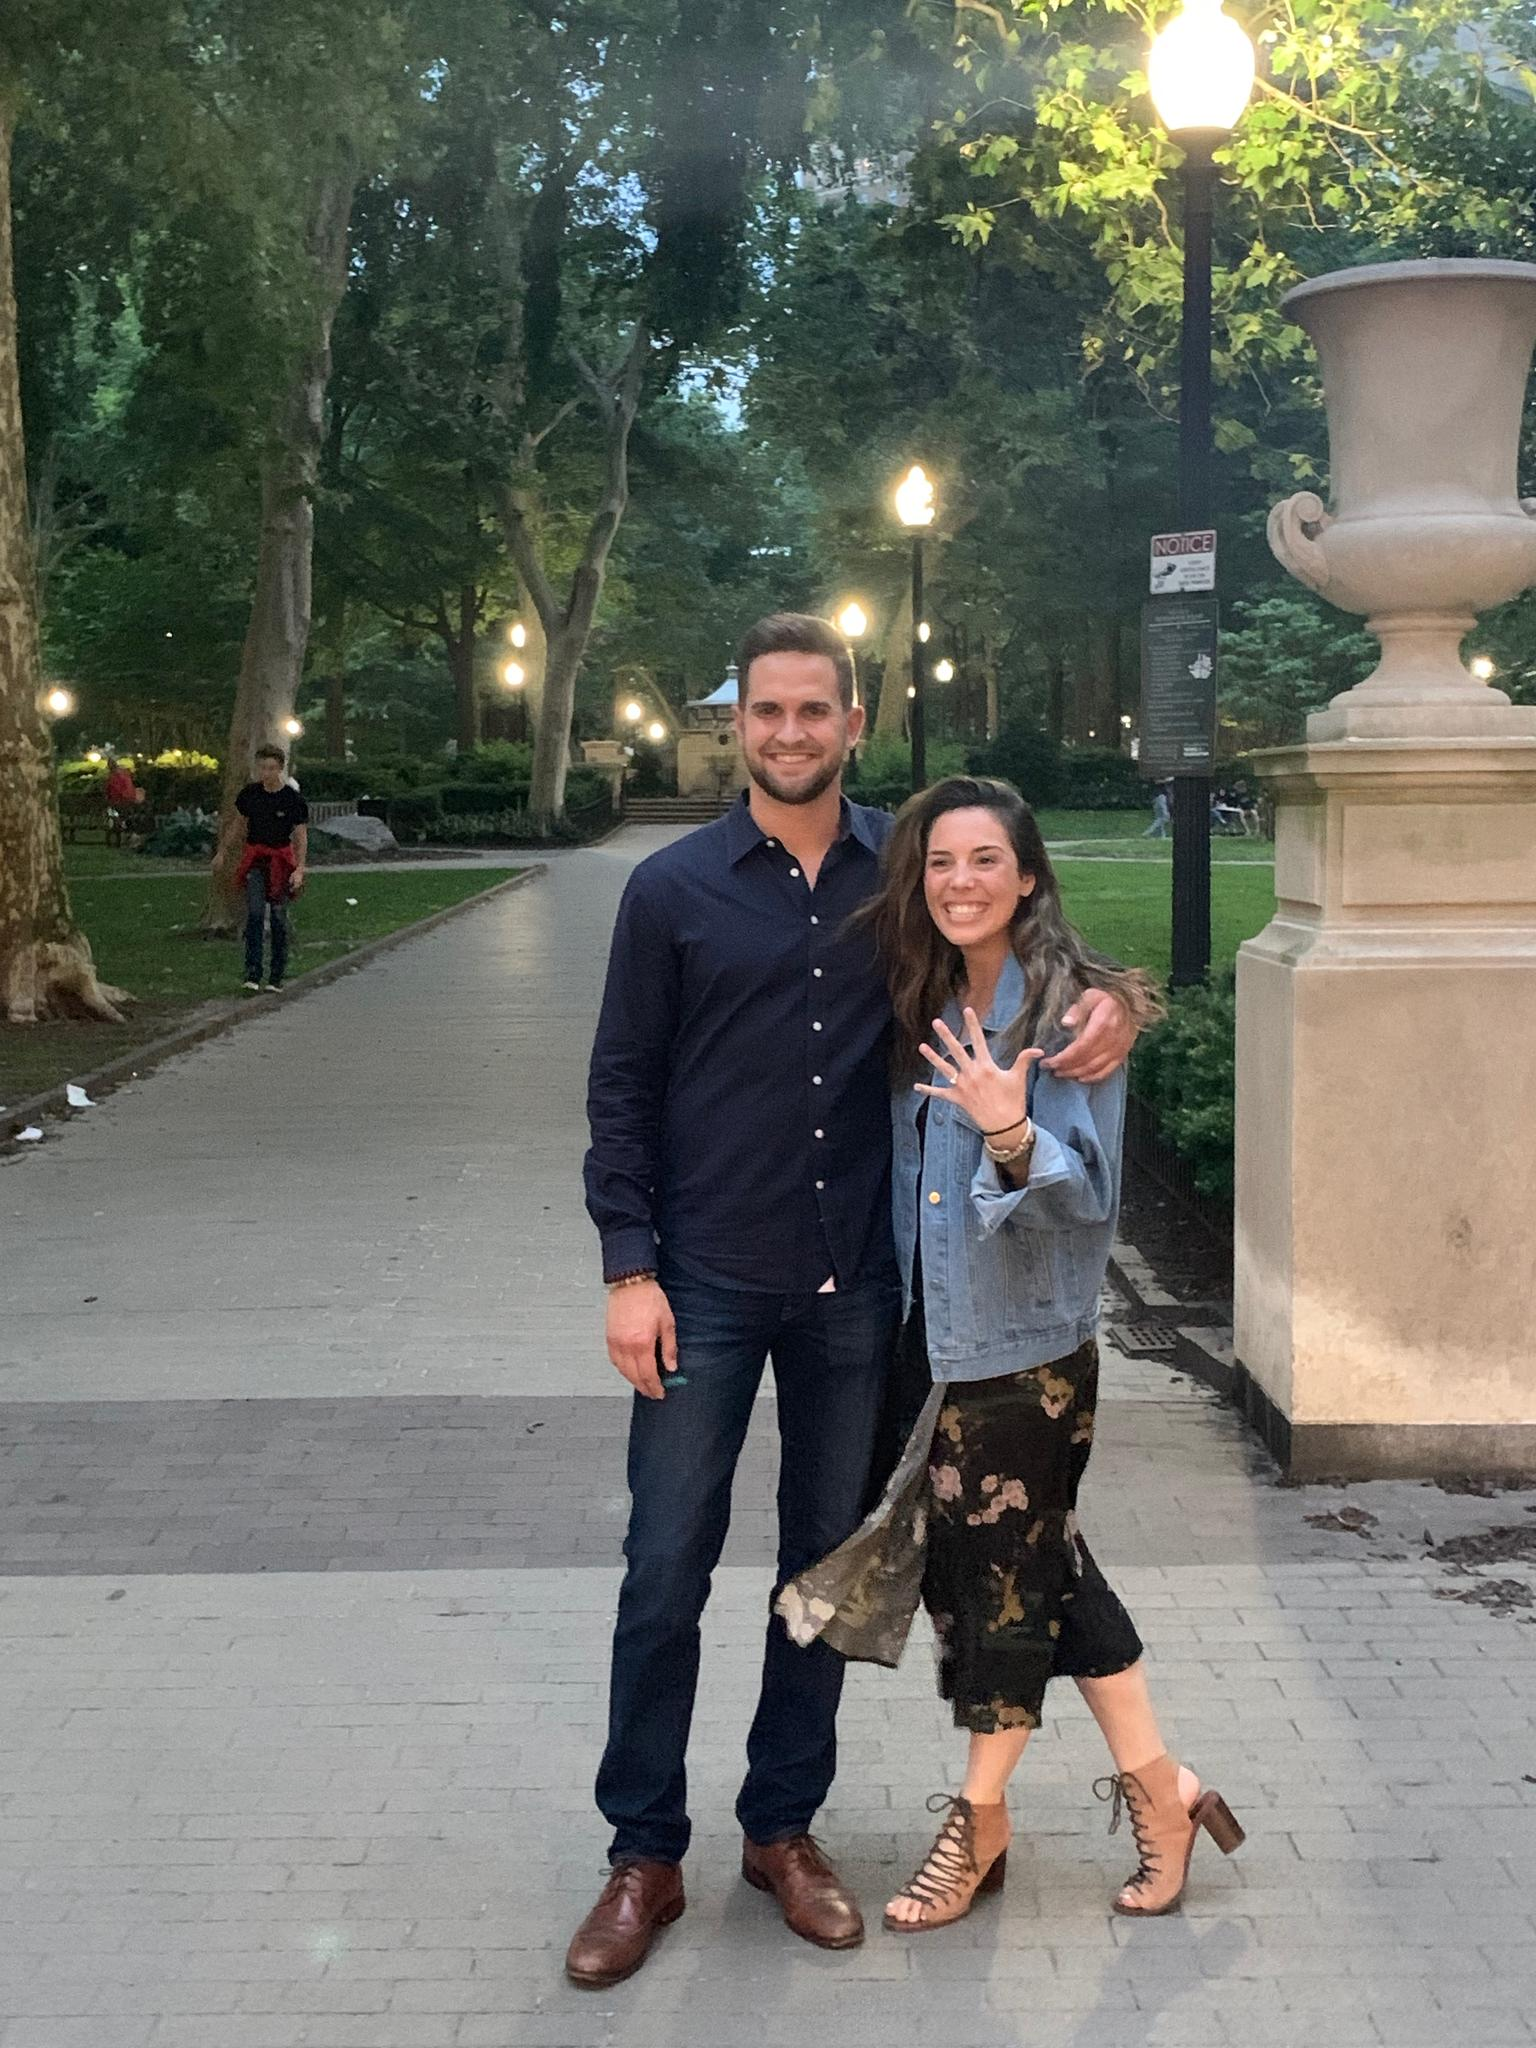 Scott popped the question! On June 15, 2019, Scott took Taylor to her favorite street in Philadelphia, Delancey St, where he got down on one knee and asked her to marry him.